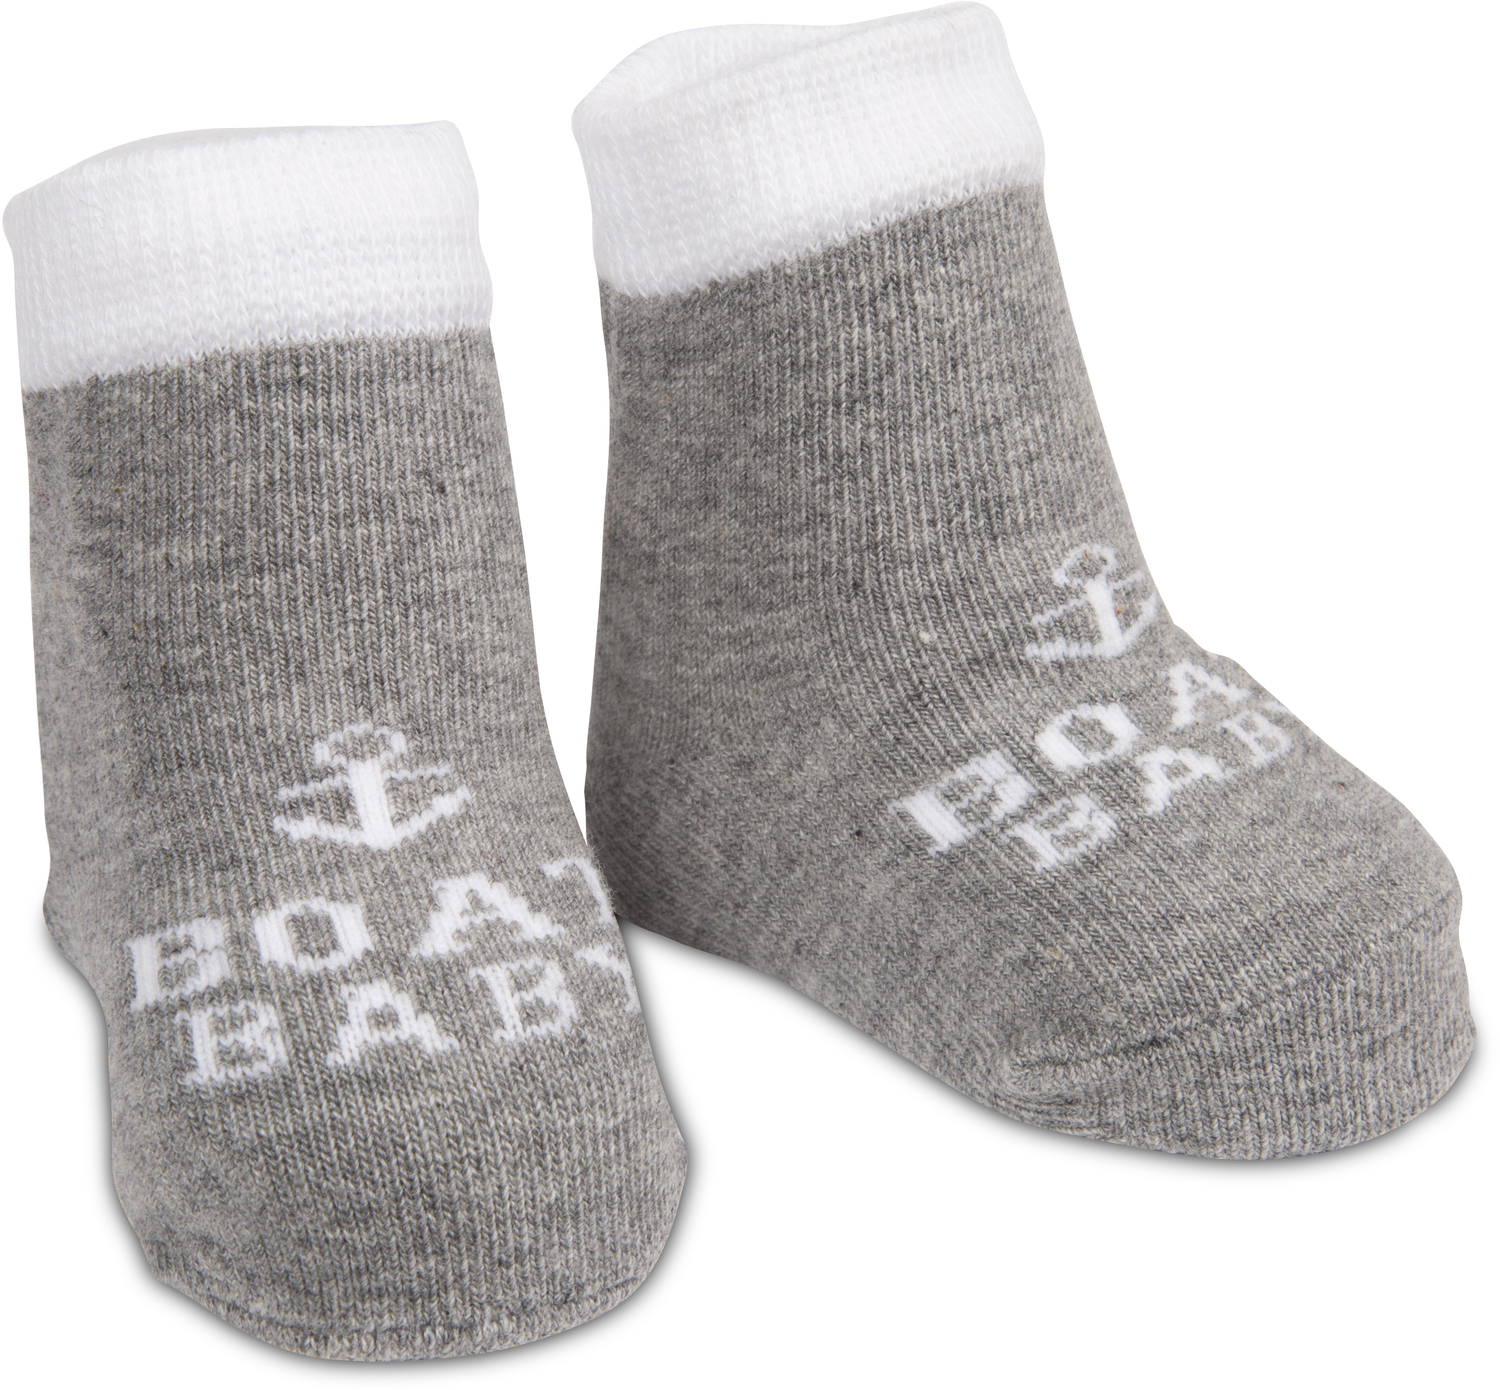 Boat by We Baby - Boat - 0-12 Months Socks